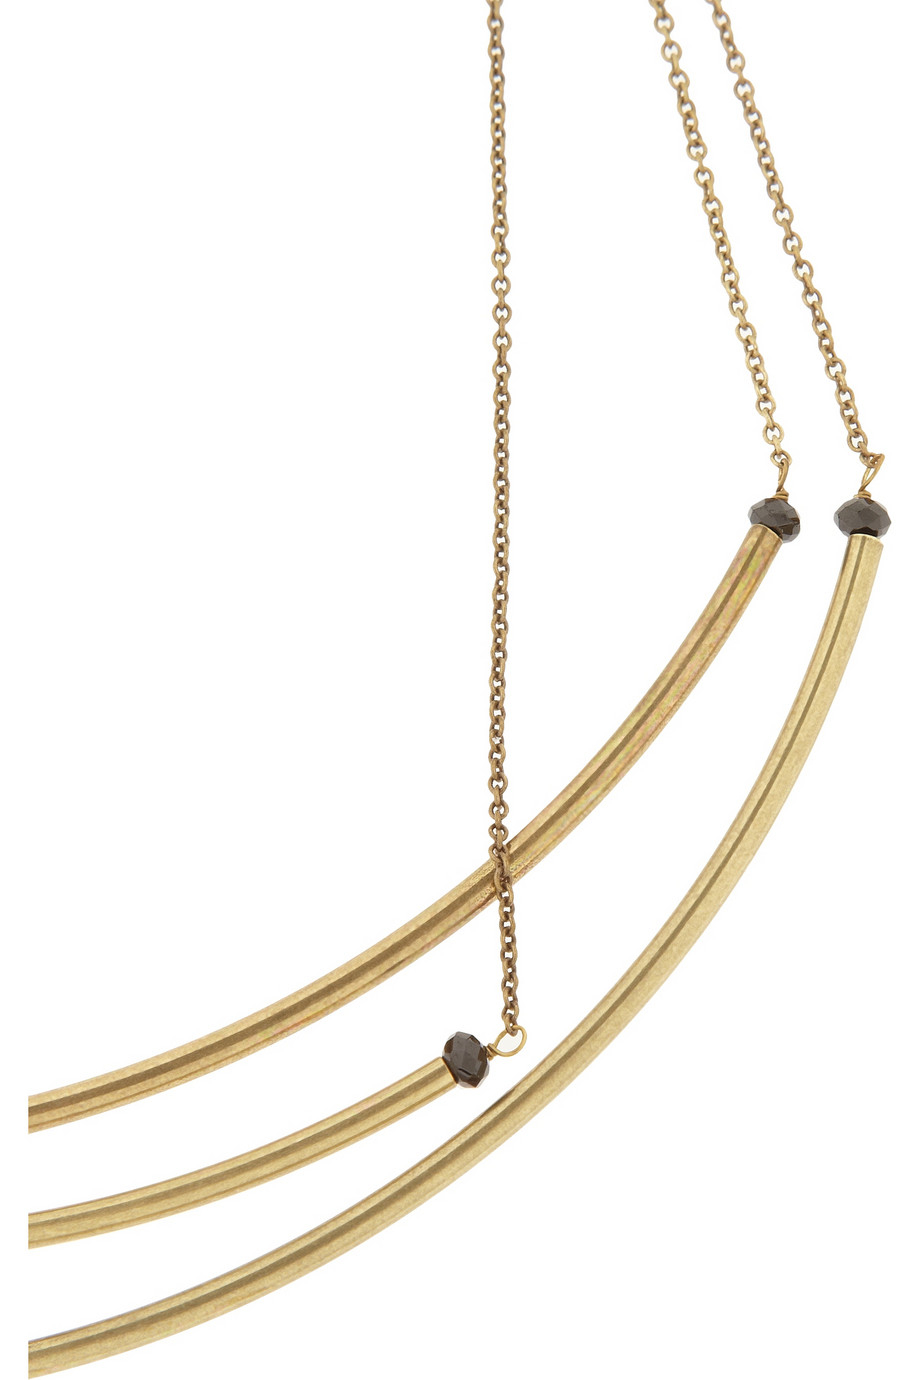 Isabel Marant Gold-Tone And Bead Necklace in Black (Metallic)